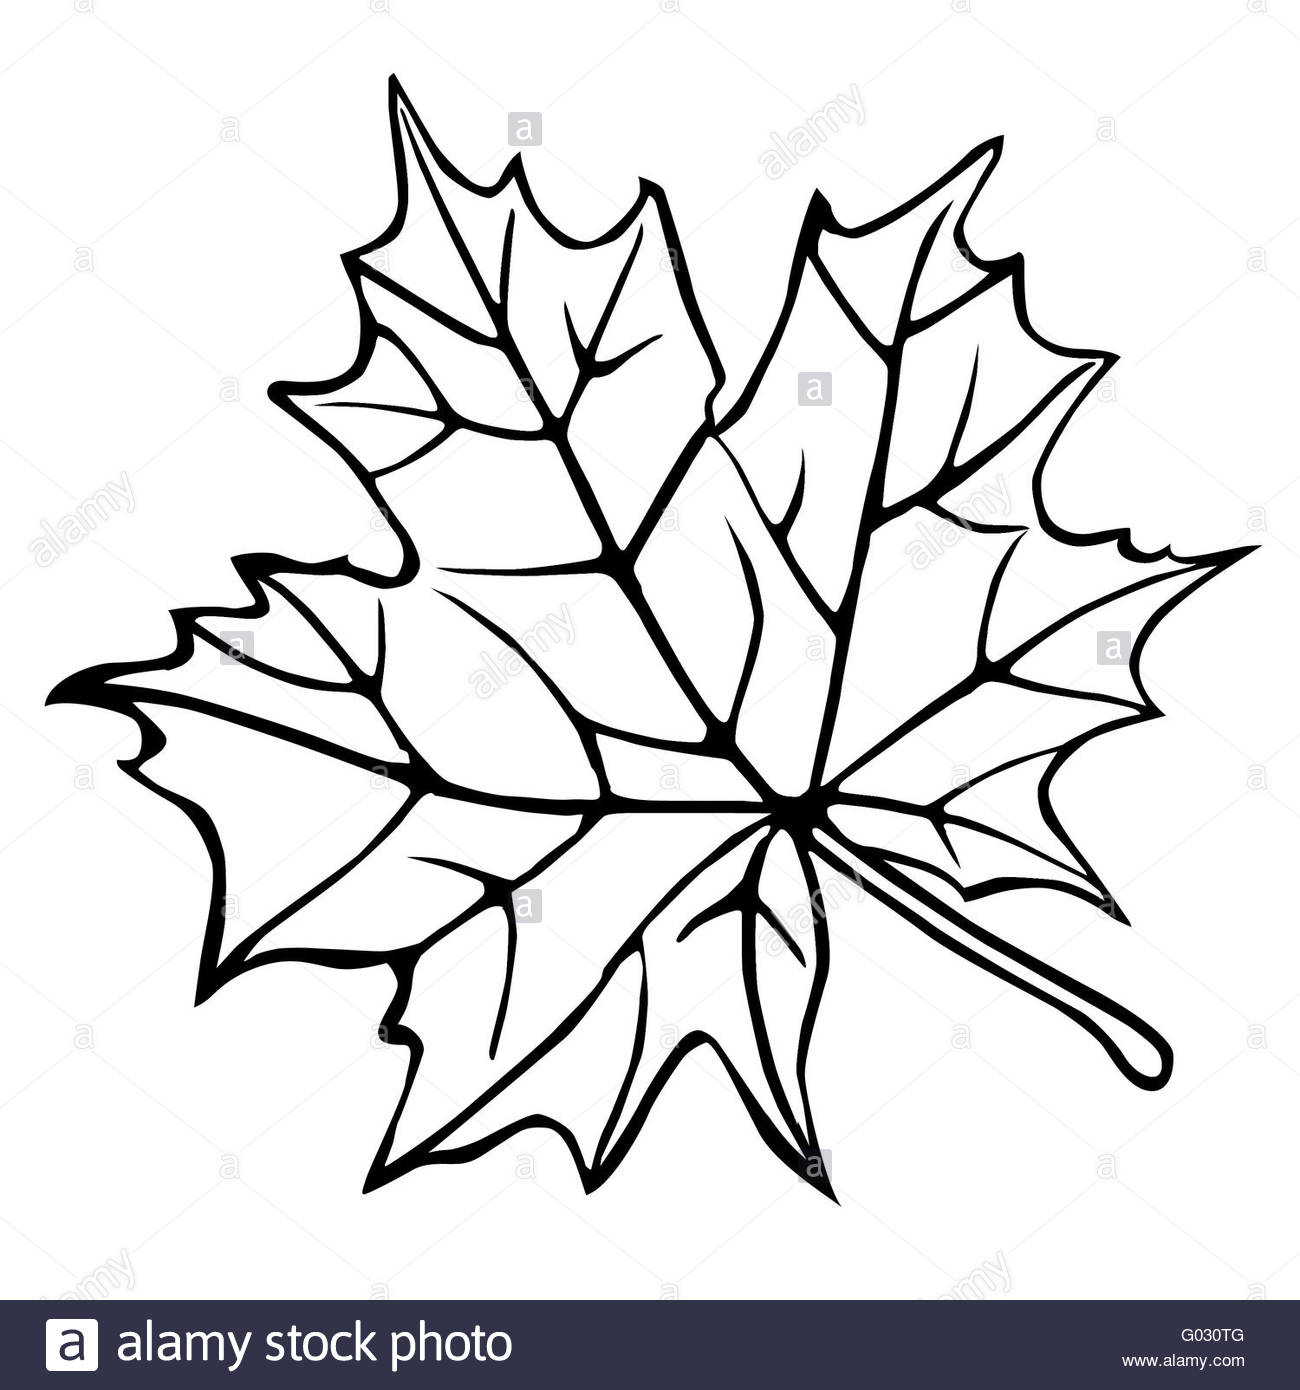 1300x1390 Silhouette Of The Maple Leaf On White Background Stock Photo